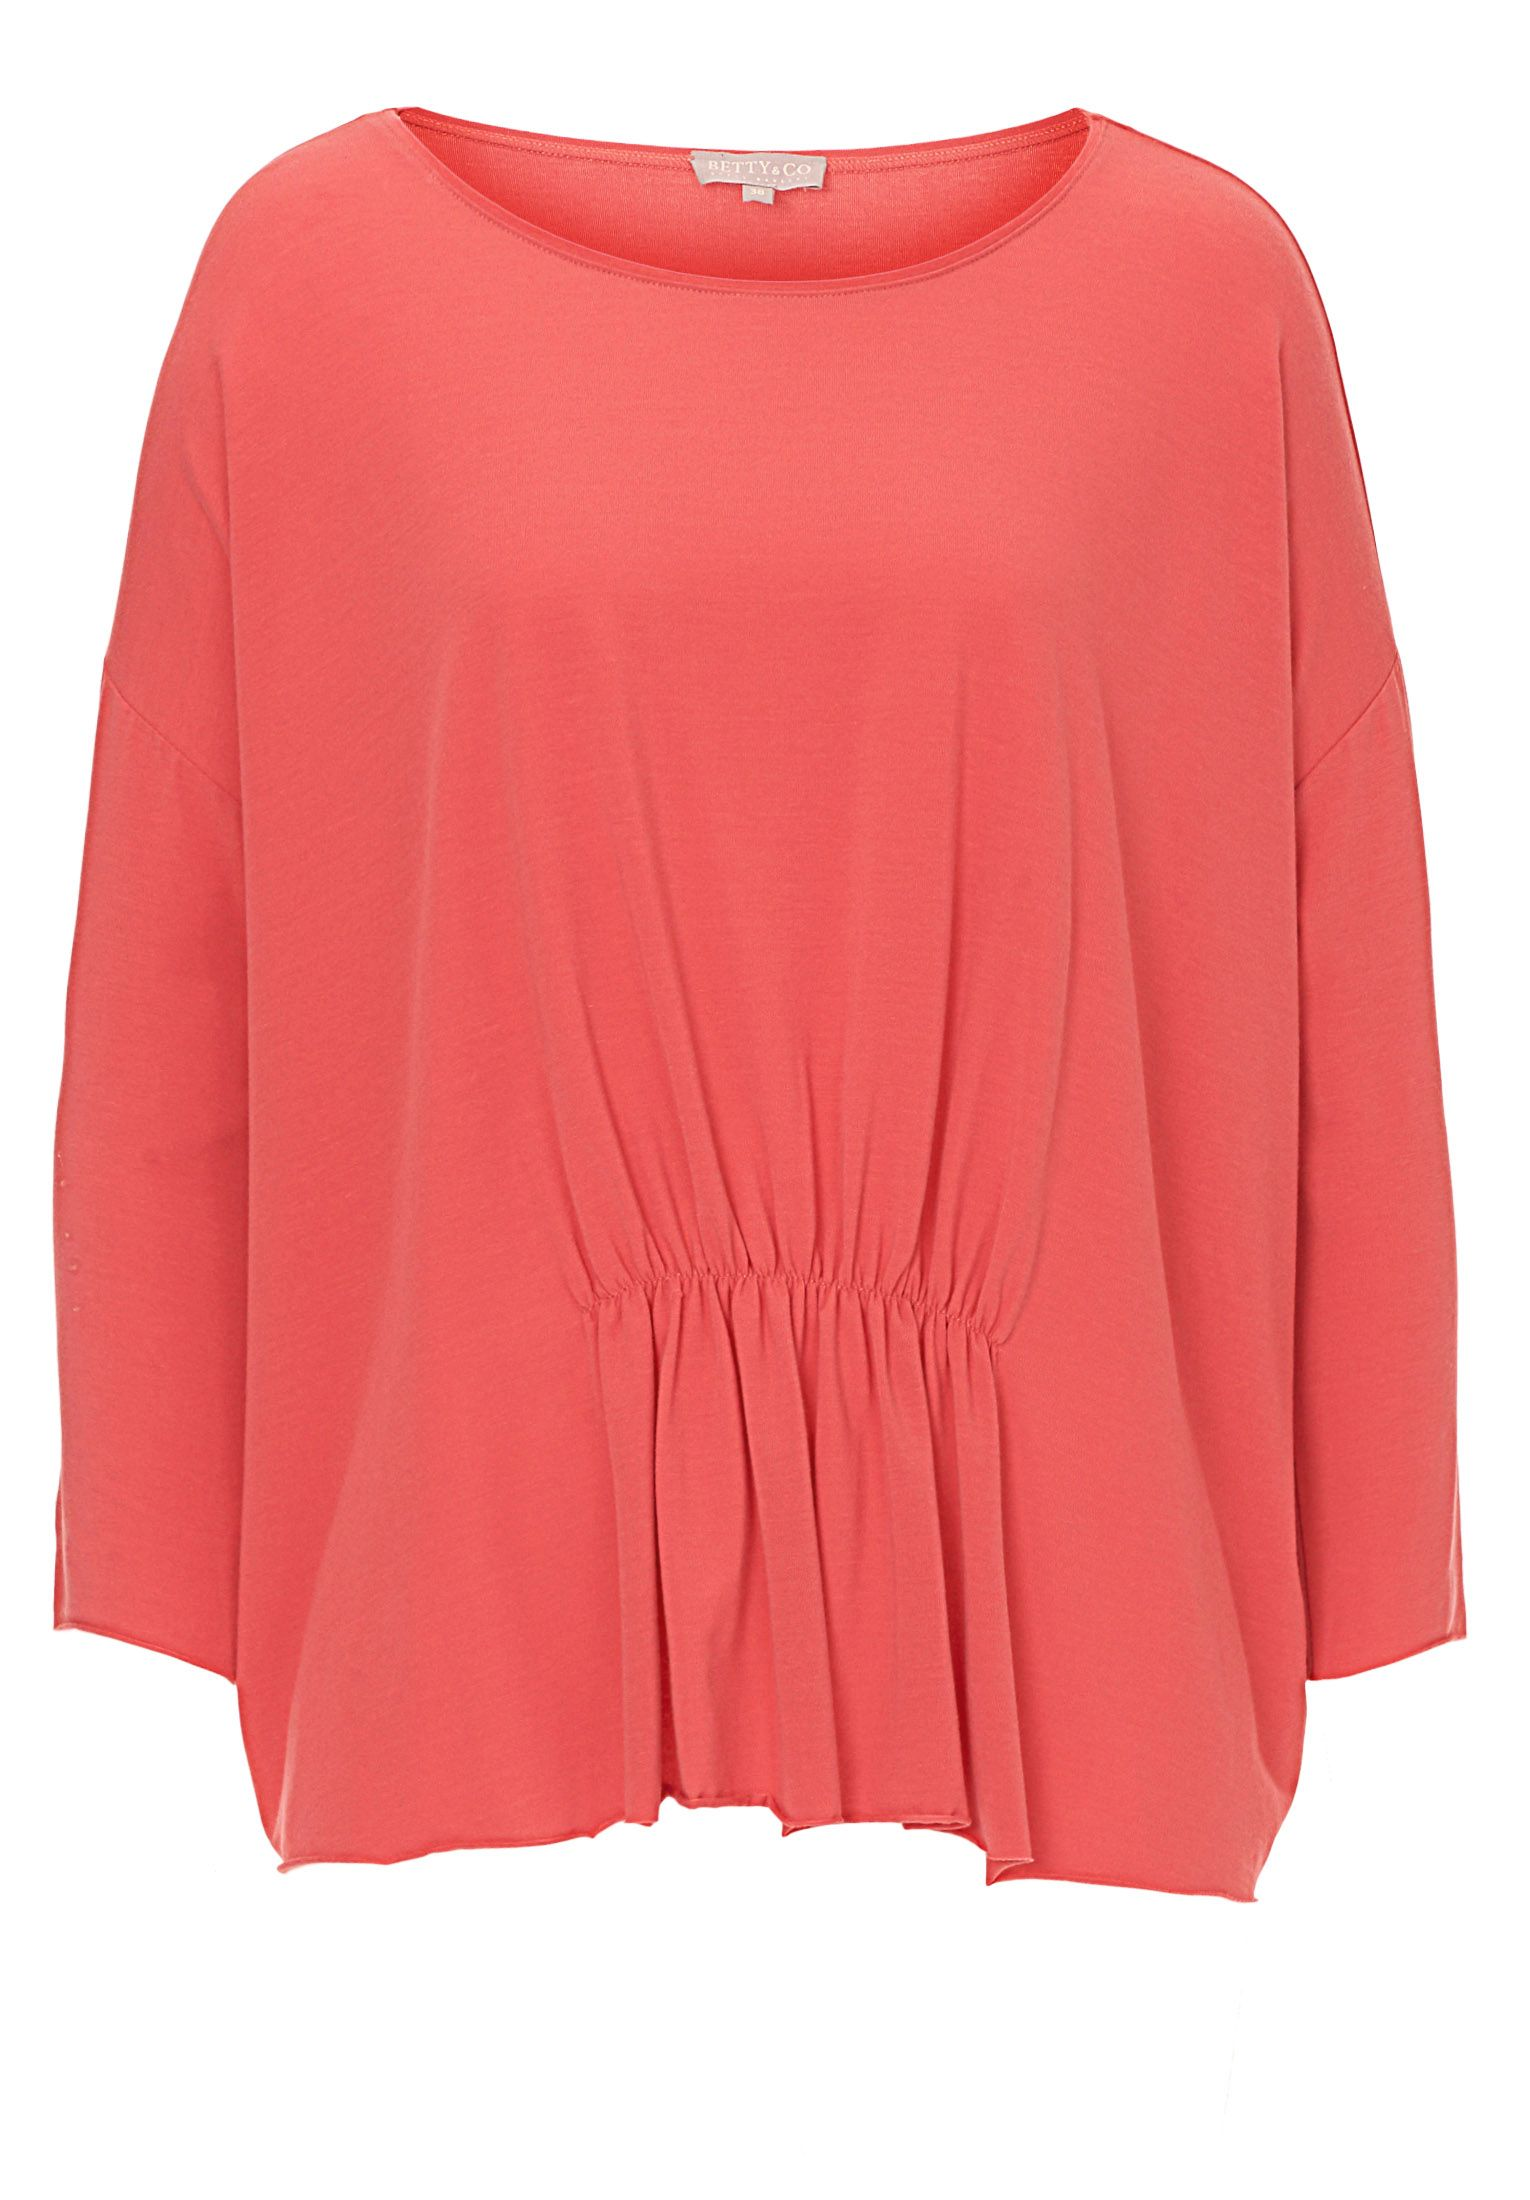 Betty & Co. Tunic Top, Red